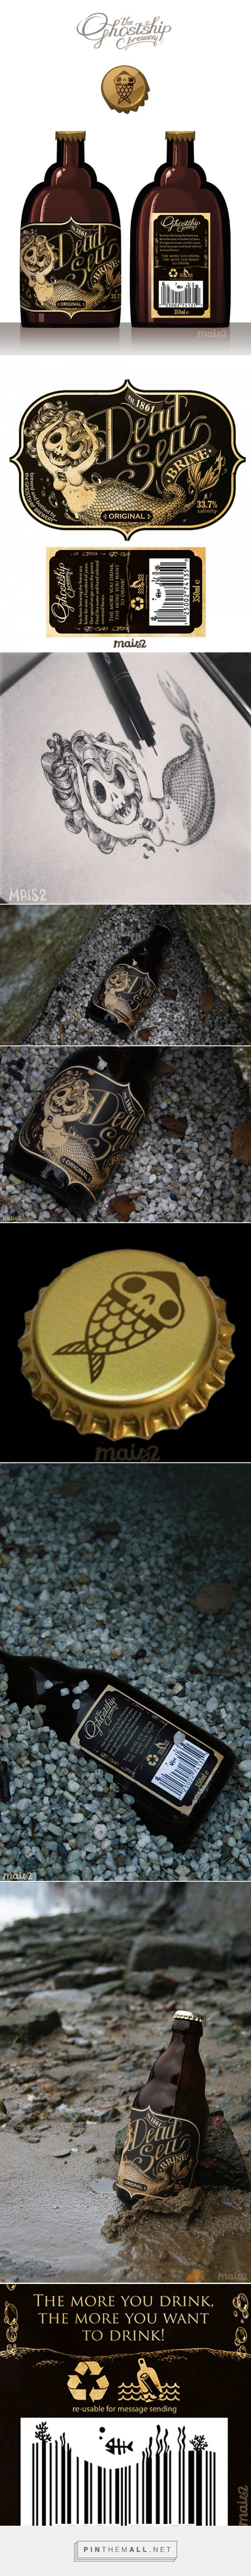 The Dead Sea: A Beer for Pirates! | DESIGN on the ROCKS